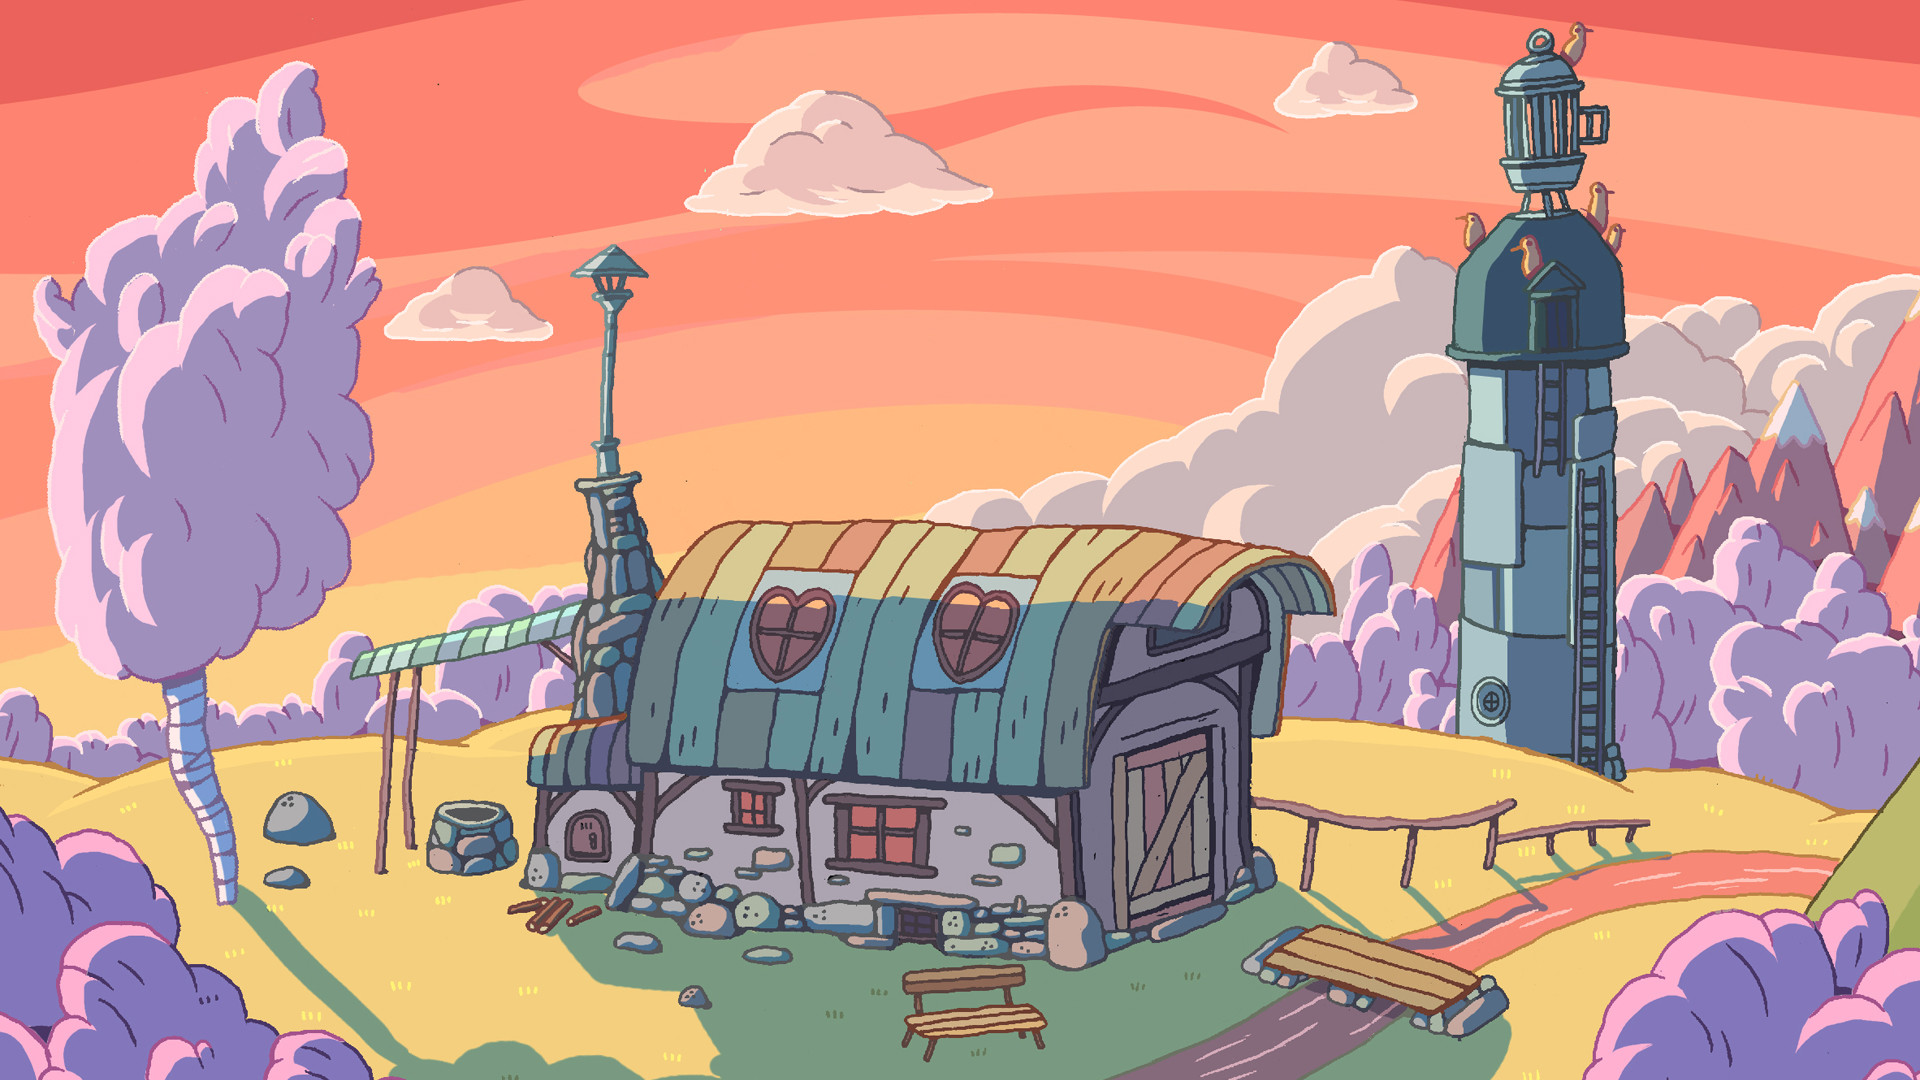 Cell Wallpaper Hd Illustration Fall Adventure Time Backgrounds 69 Images